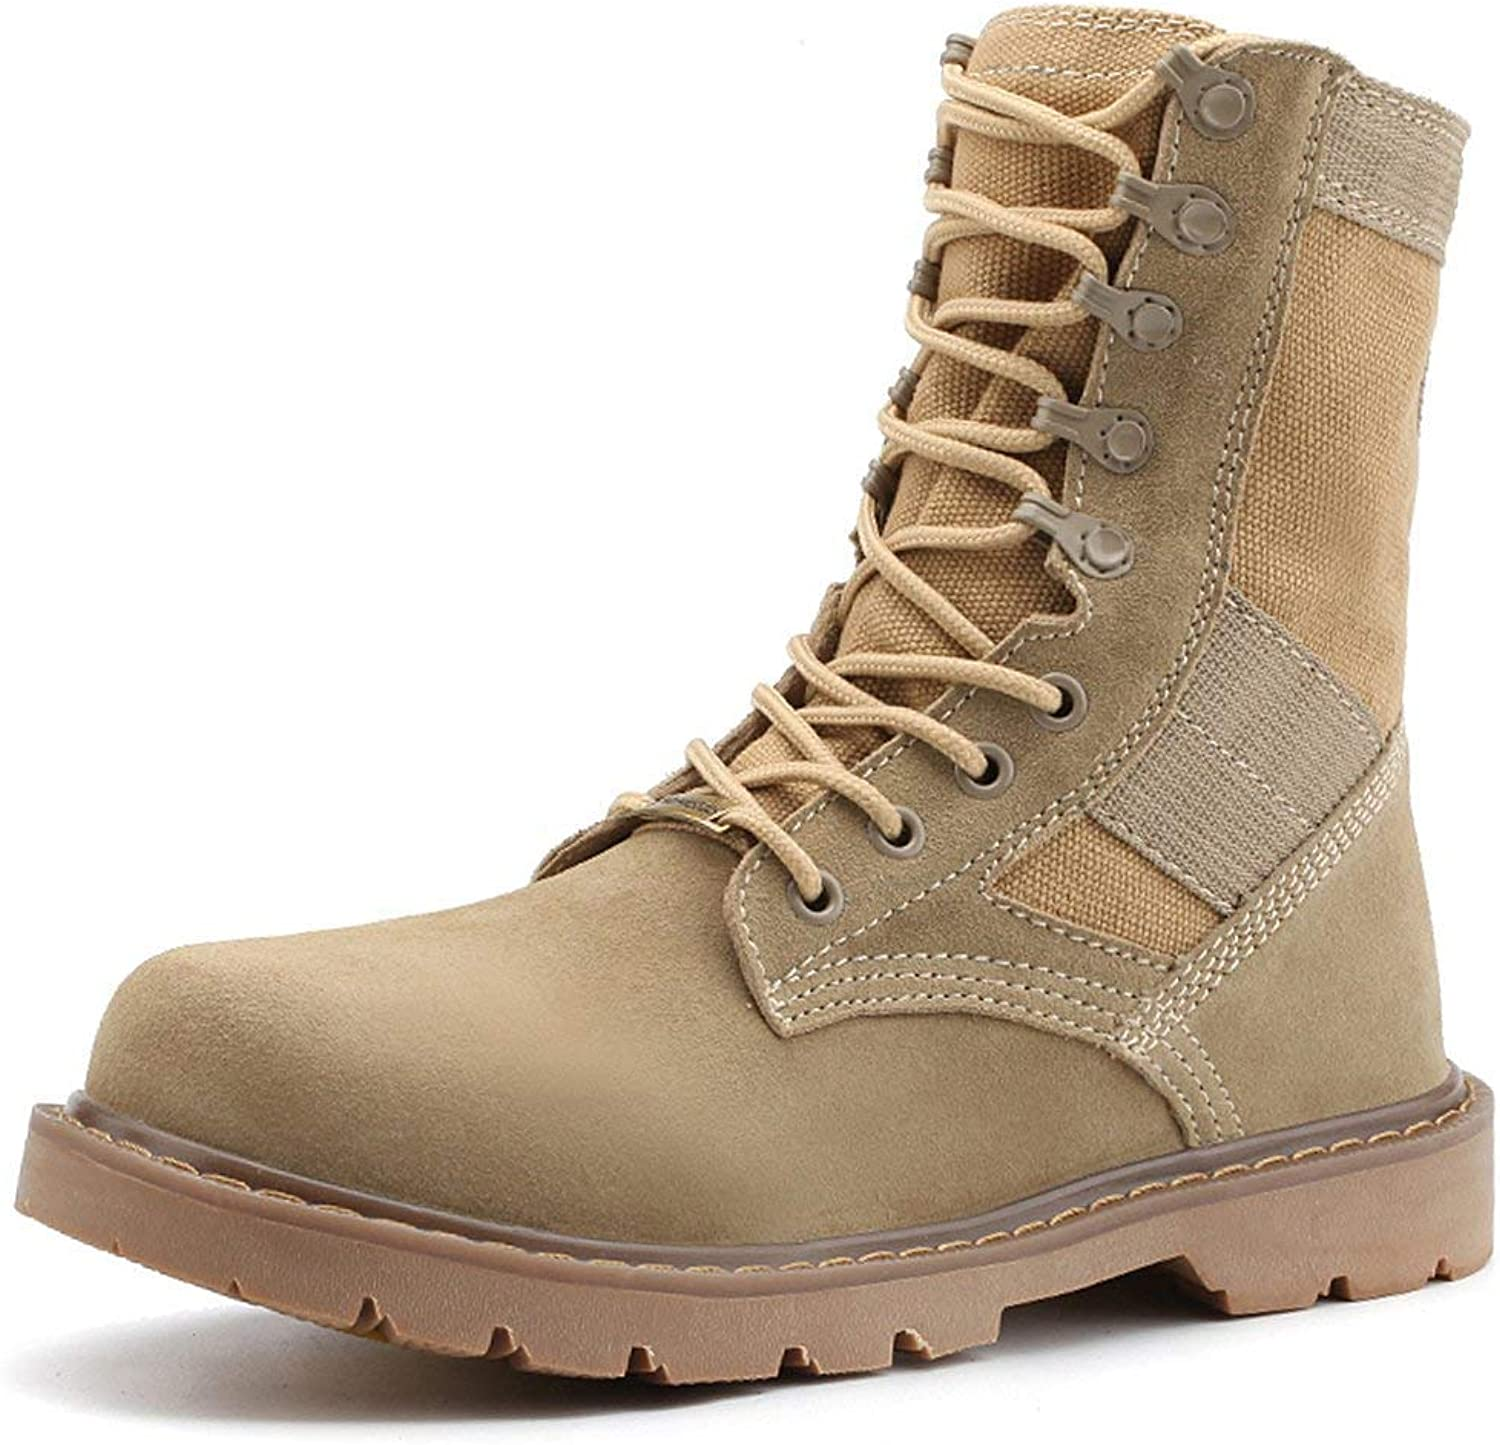 ZX Boots Men's Genuine Leather Desert Boots Jungle Boots Durable Outdoor Hiking Trekking Boots Combat Boots